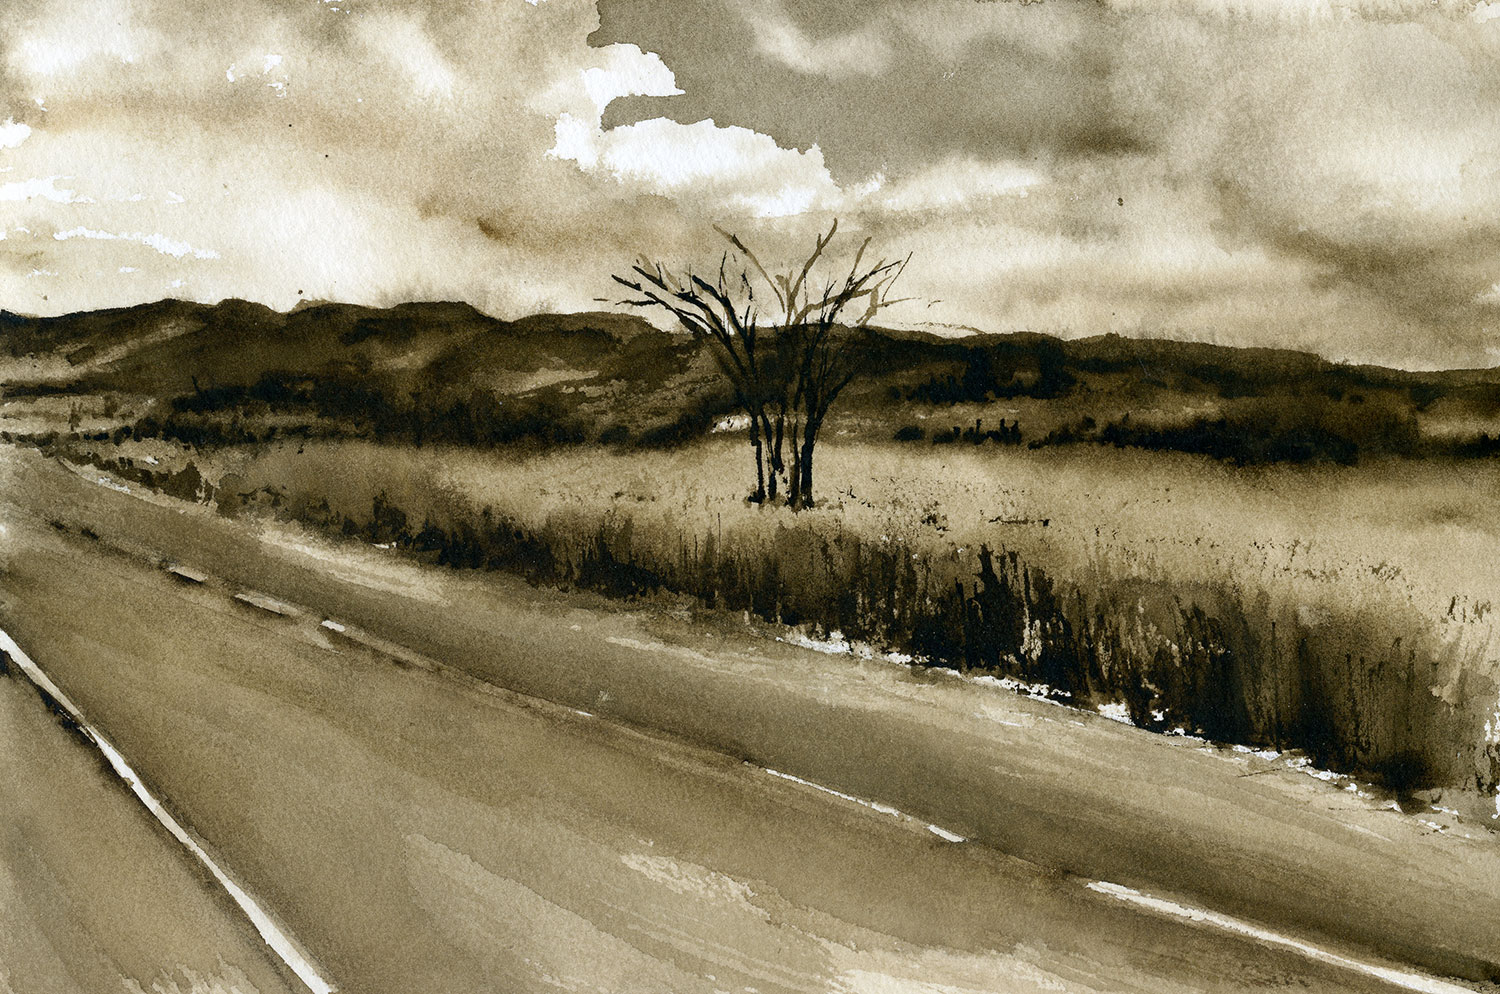 Watercolor painting in sepia of a highway beside a field with a single tree and distant mountains.